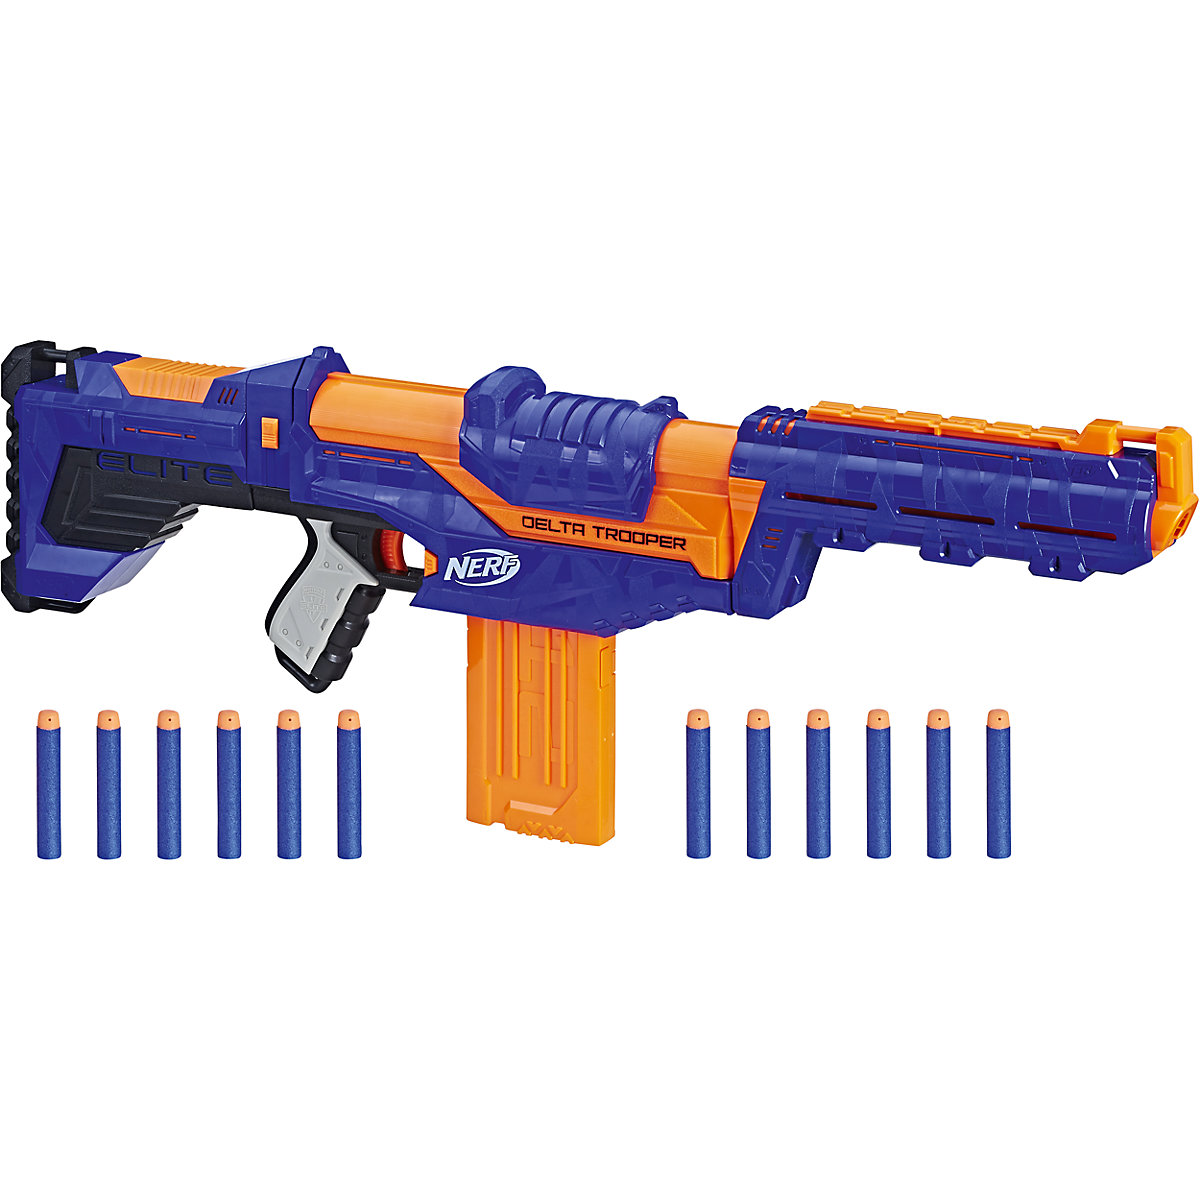 Toy Guns NERF 8376467 Children Kids Toy Gun Weapon Blasters Boys Shooting Games Outdoor Play MTpromo